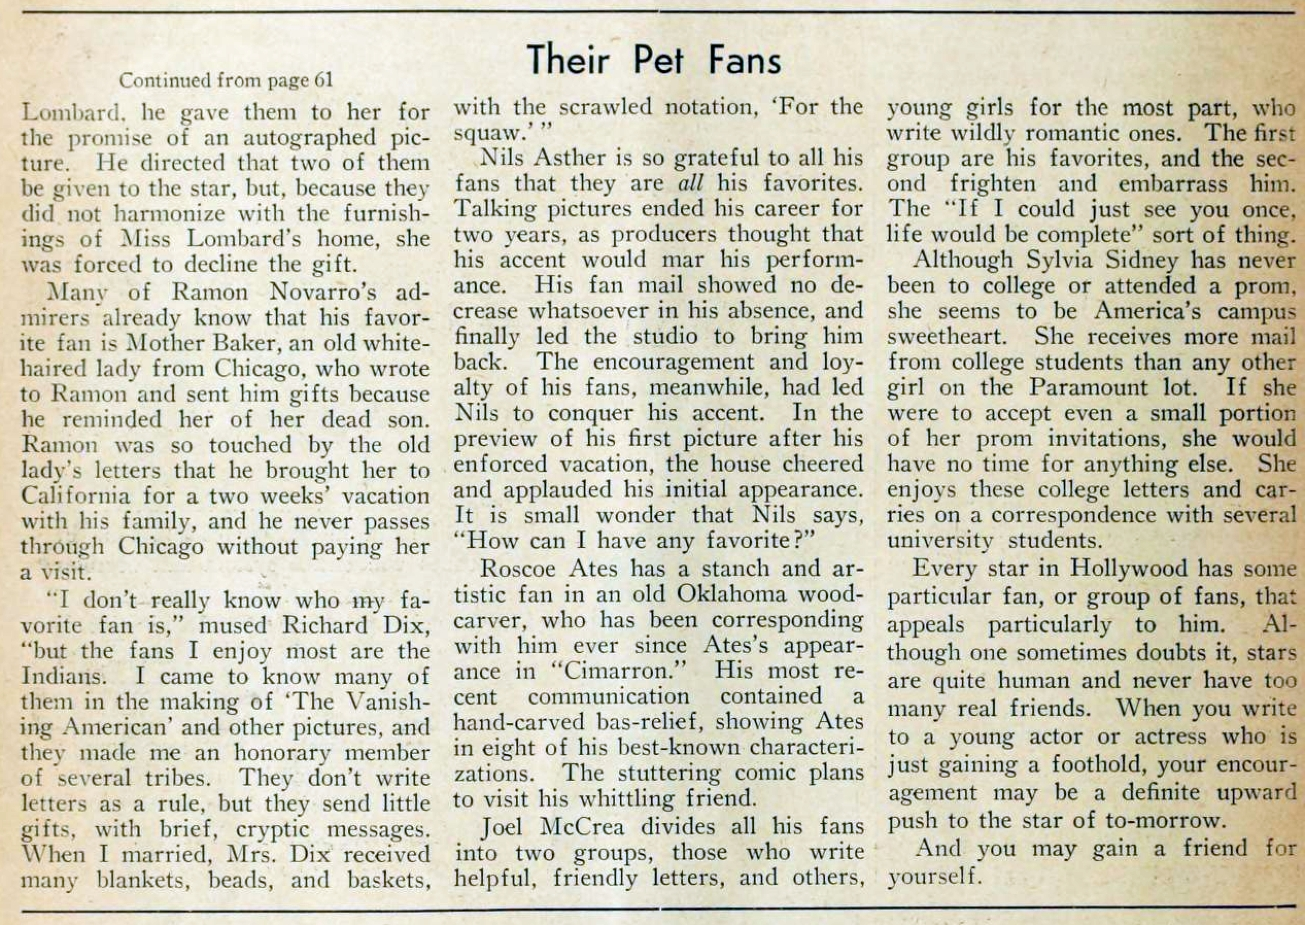 carole lombard picture play dec 1932 their pet fans 03a